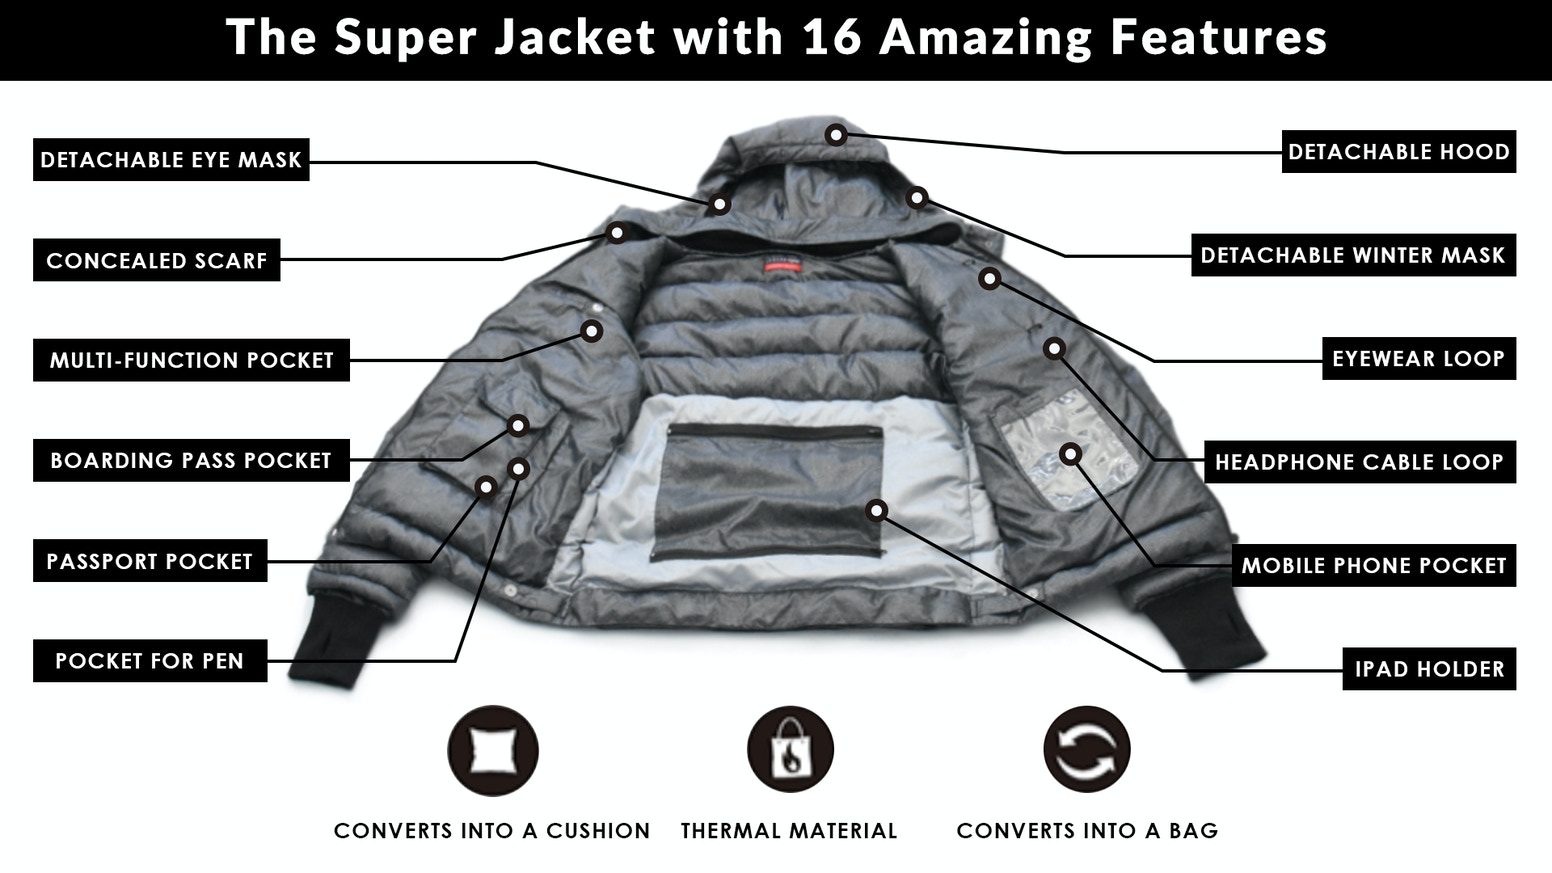 GIGA | The Super Jacket with 16 Amazing Features by Richard